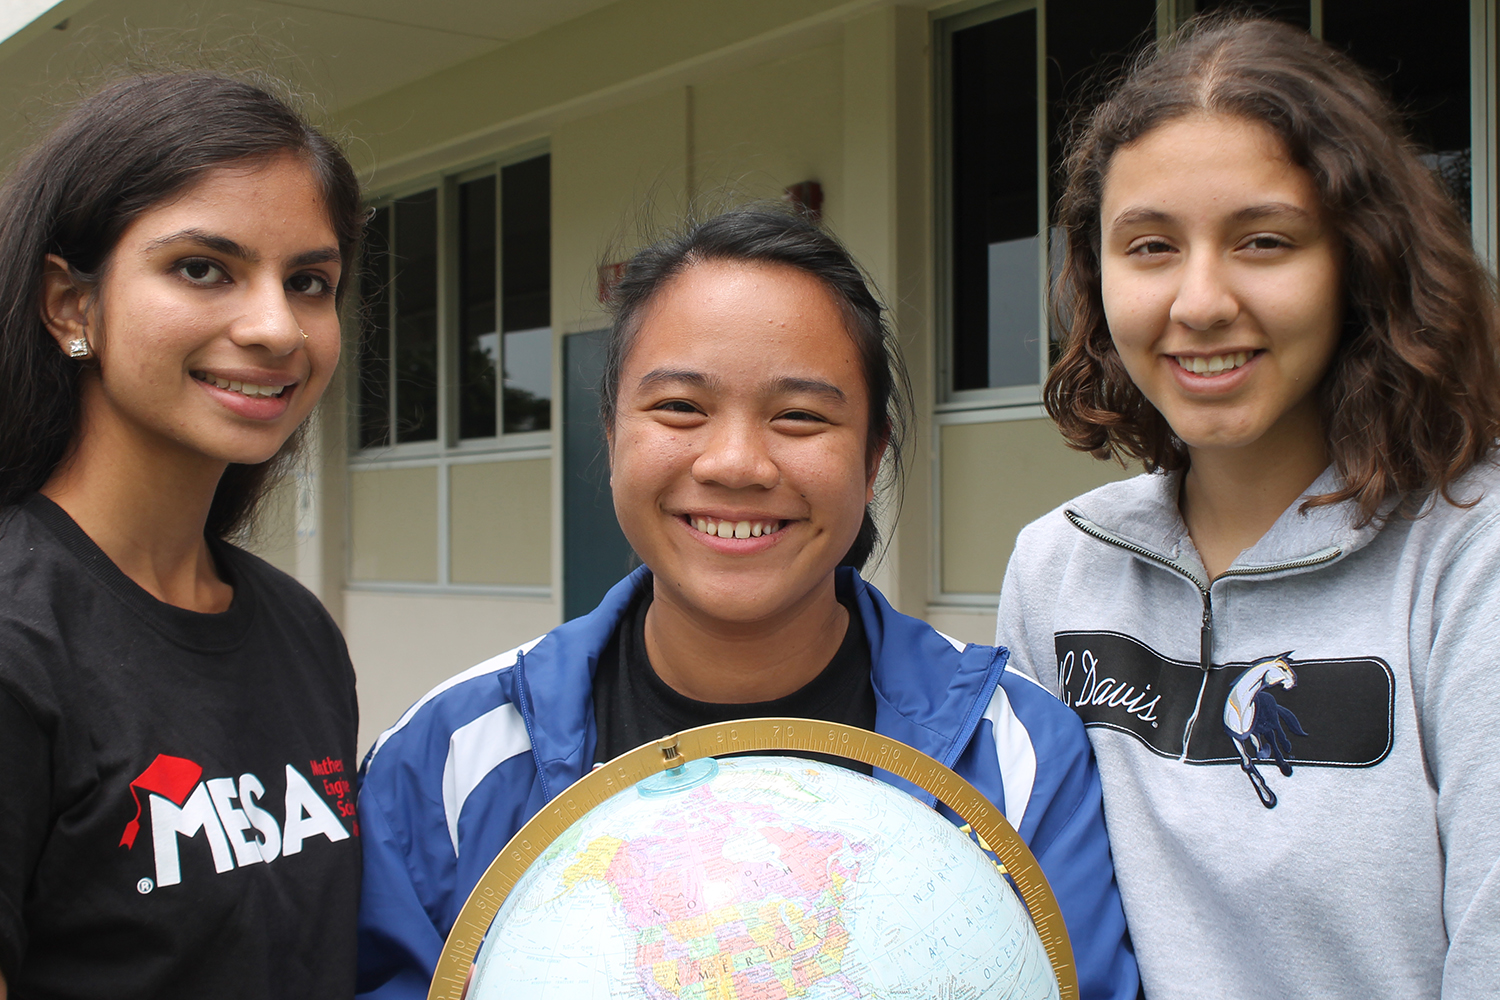 Dhruvi Dalwaldi (India), Jasmine Juliano (Philippines) and Leslie Pulido (Mexico) represent all parts of the globe.